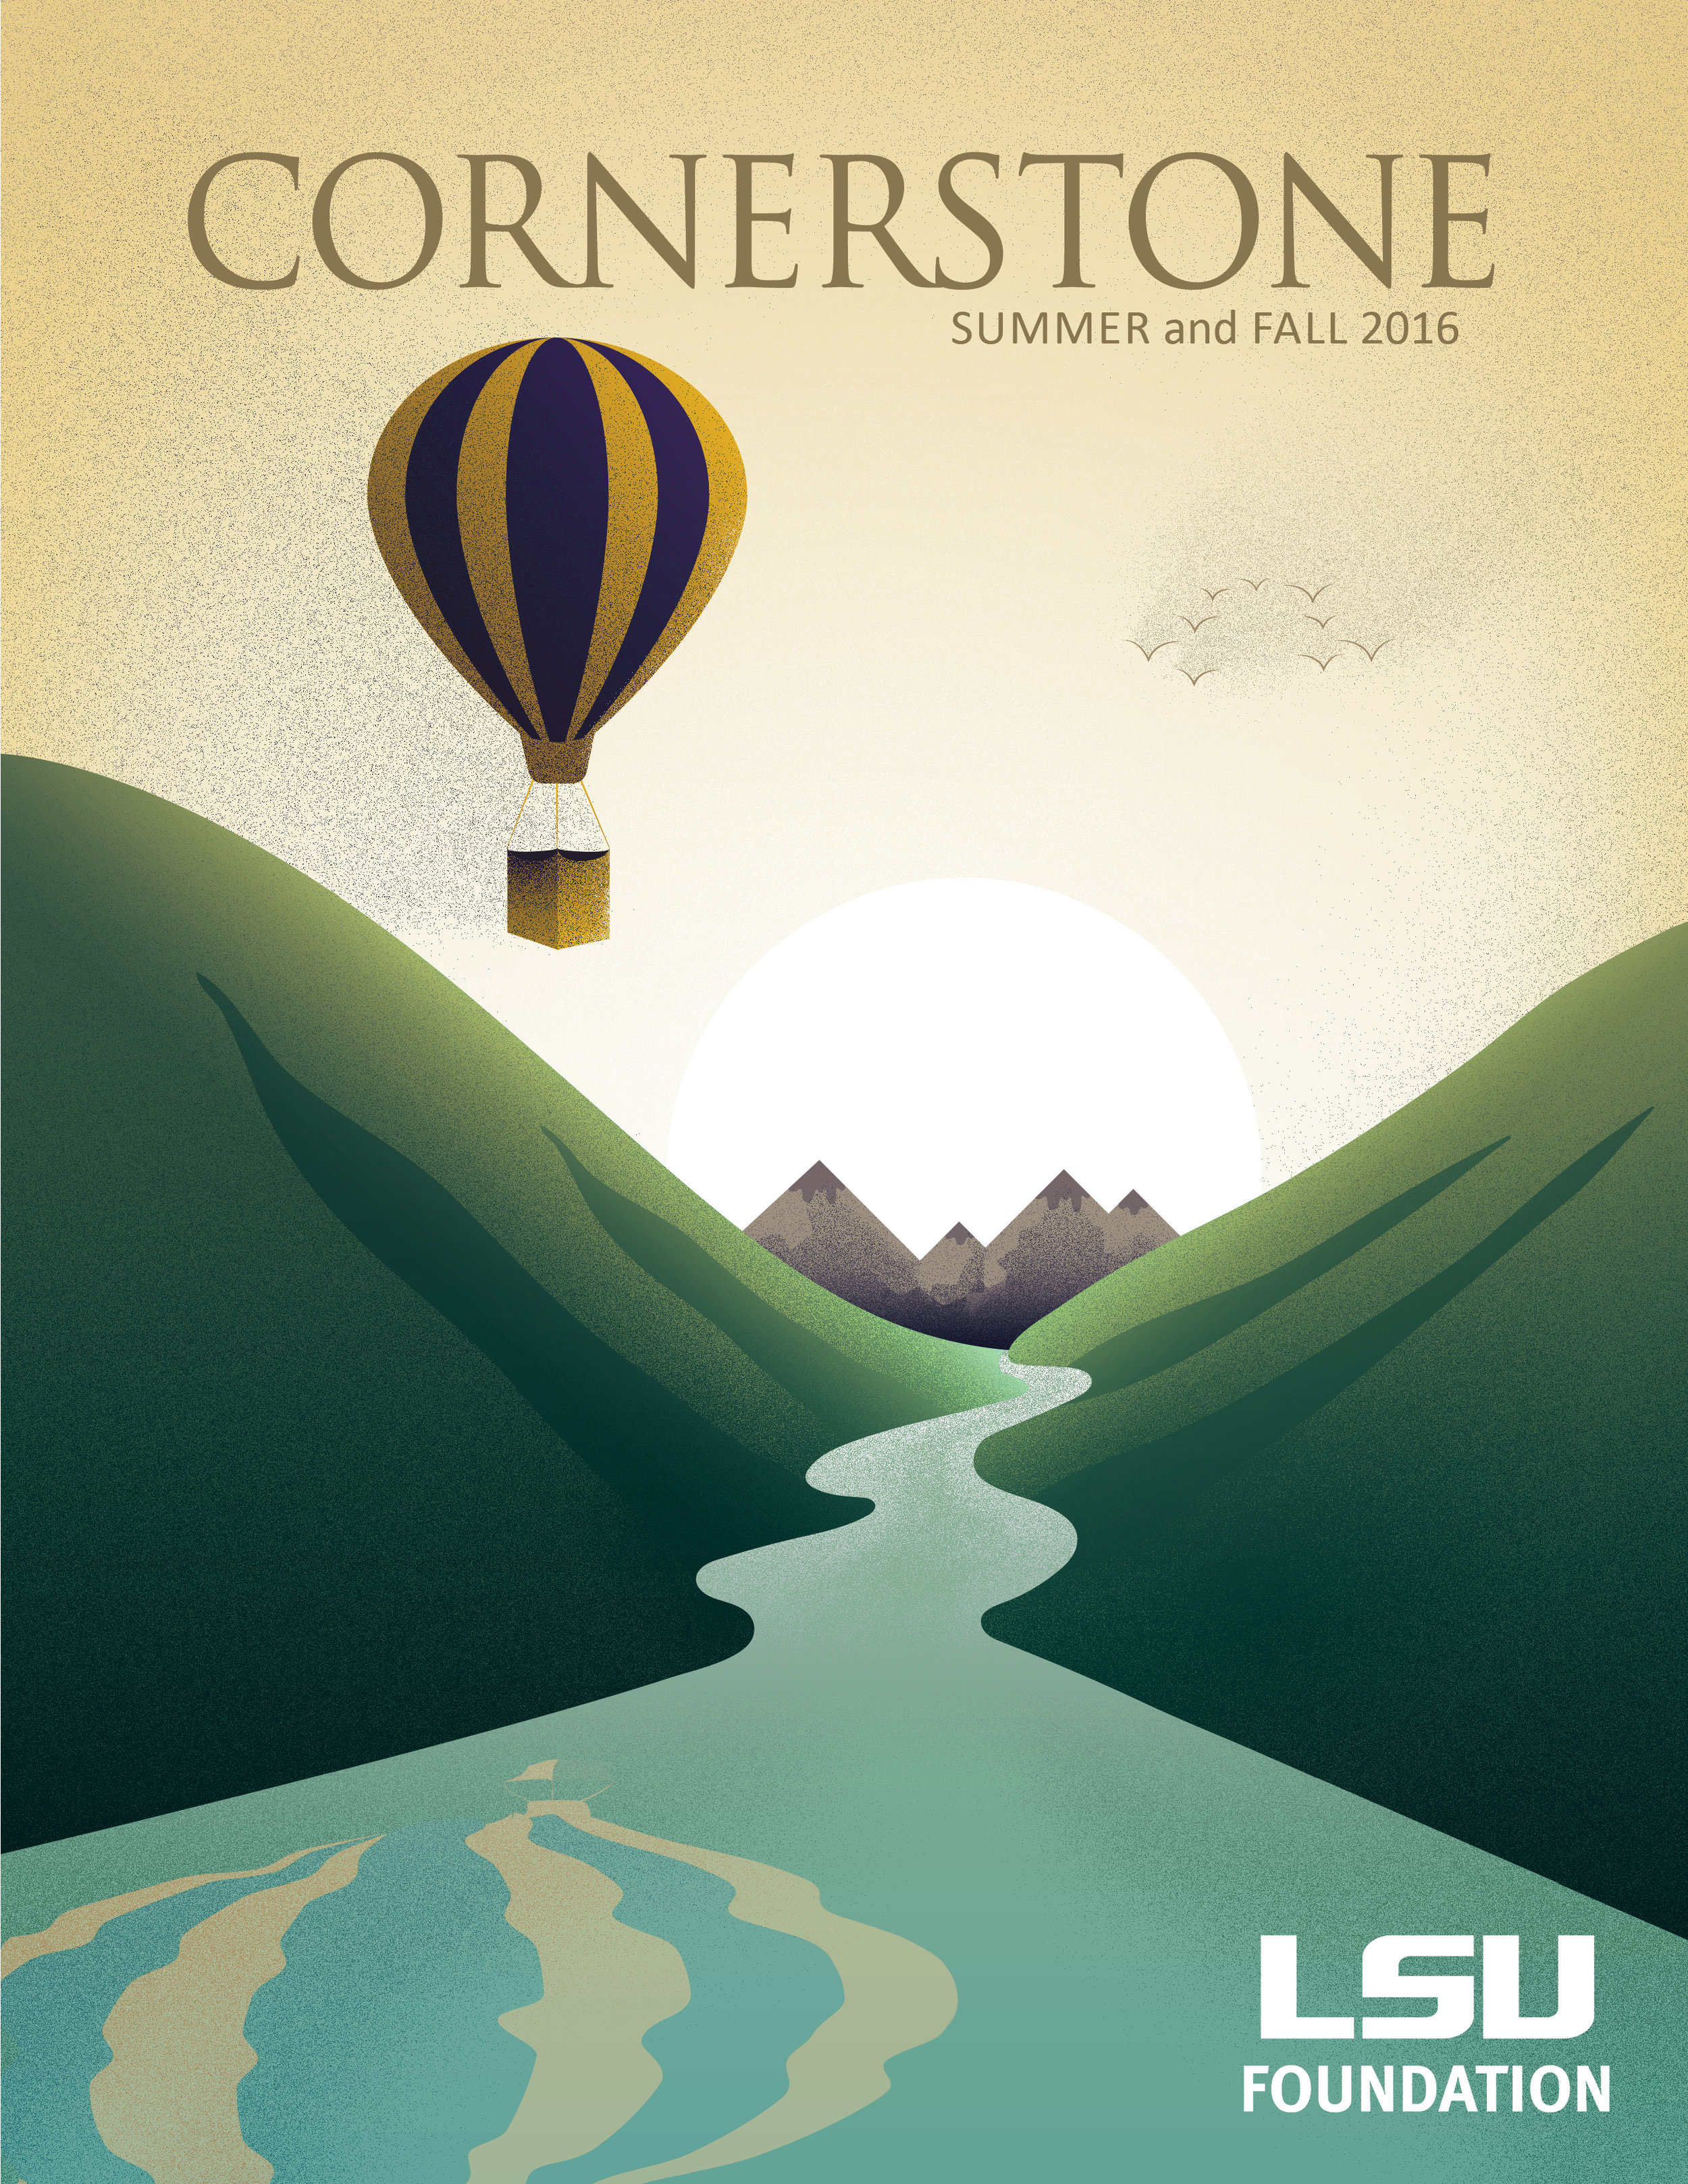 Cornerstone Redesign - Cornerstone is a publication for alumni and donors who give to Louisiana State University. For the summer and fall issue, the client wanted the cover to express the hope the University had in regards to the budget crisis that was effecting the campus. To illustrate that, I used a hot air balloon to convey the message of optimism that was needed to surmount the dilemna.For the interior, previous issues were all designed by various designers assigned to the project so my job was to create a template going forward for other creatives to use including a grid structure, typeface choices, photo styles, pull quotes, etc. to create a more consistent look for the editorial piece.